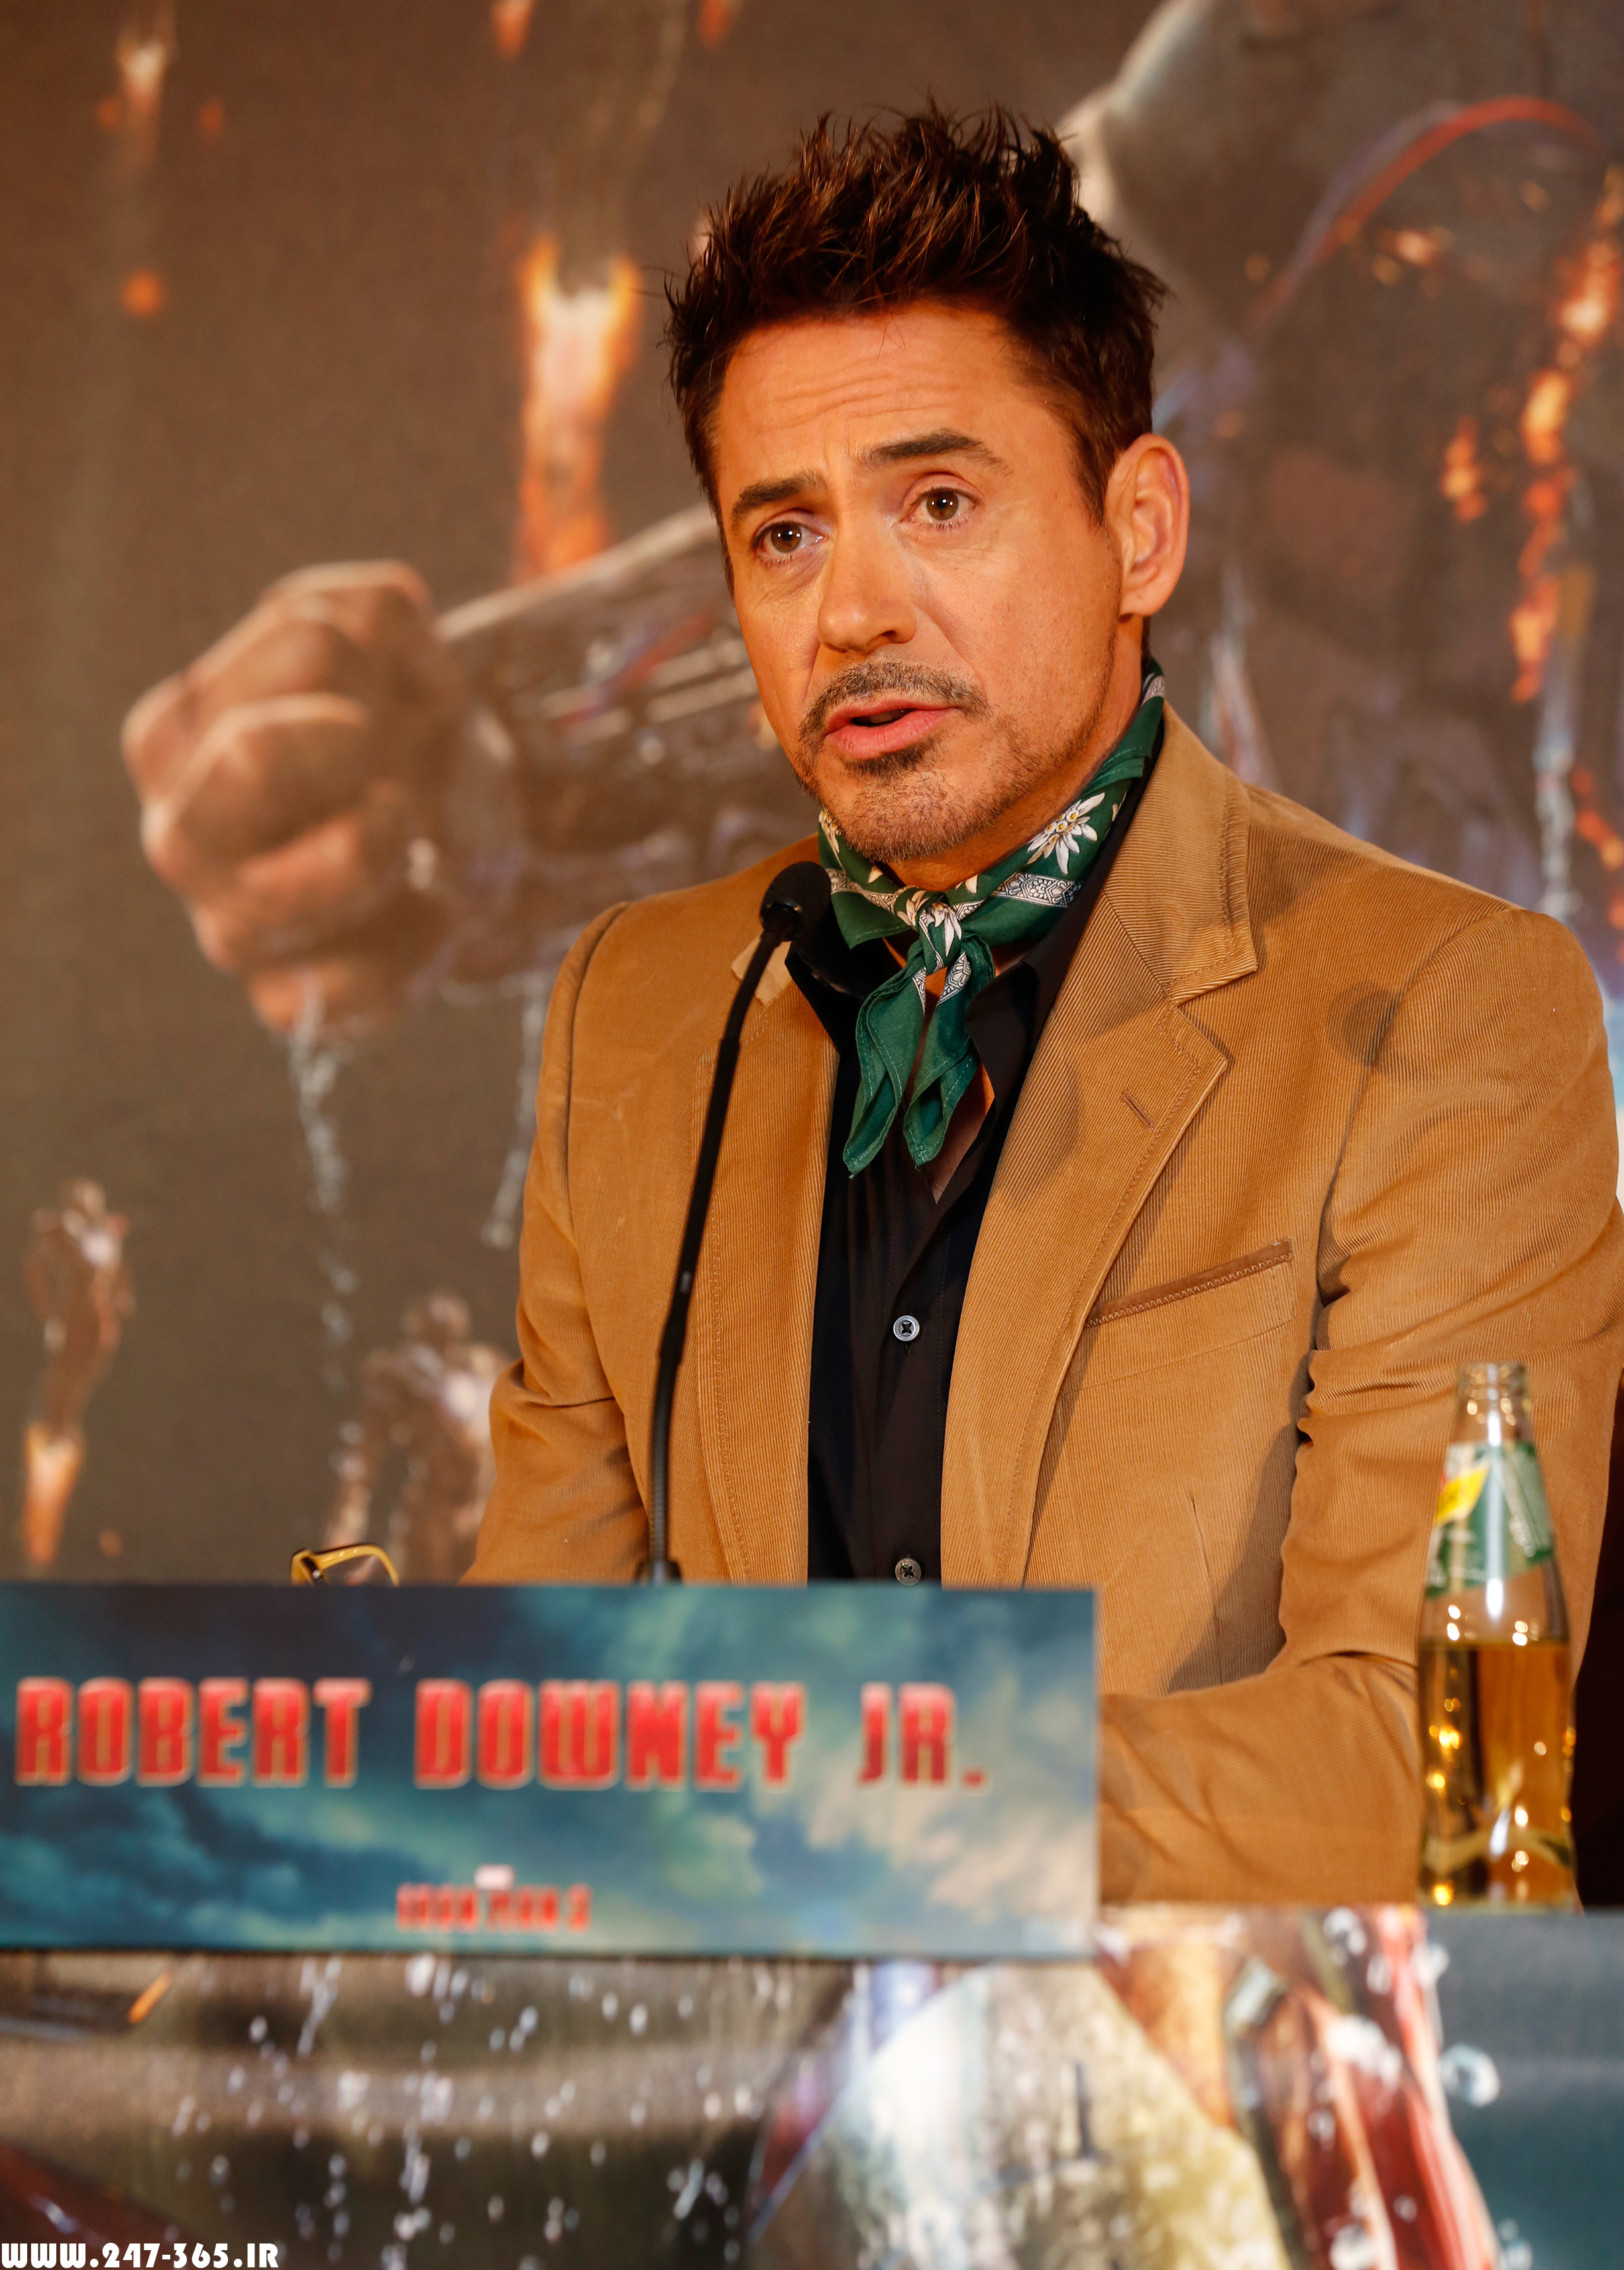 http://dl.247-365.ir/pic/celebrity/robert_downey_jr_3/Robert_Downey_Jr_3_17.jpg